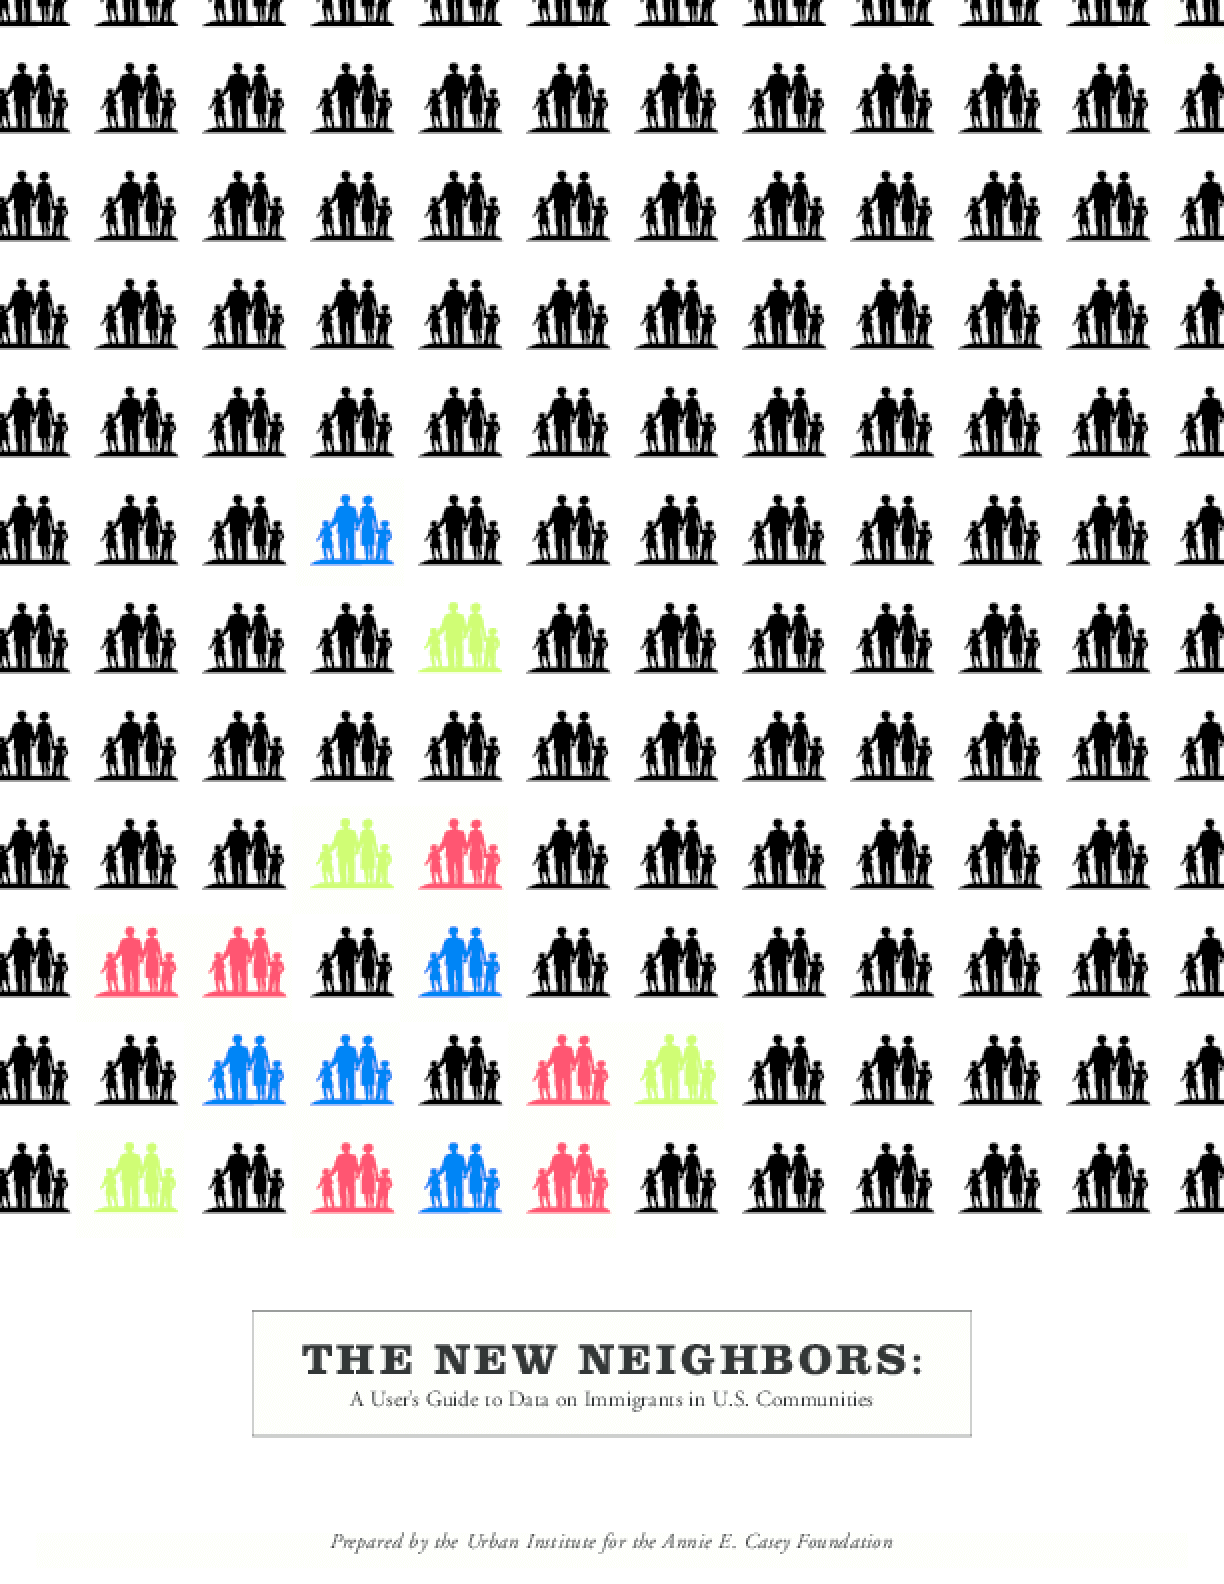 The New Neighbors: A User's Guide to Data on Immigrants in U.S. Communities